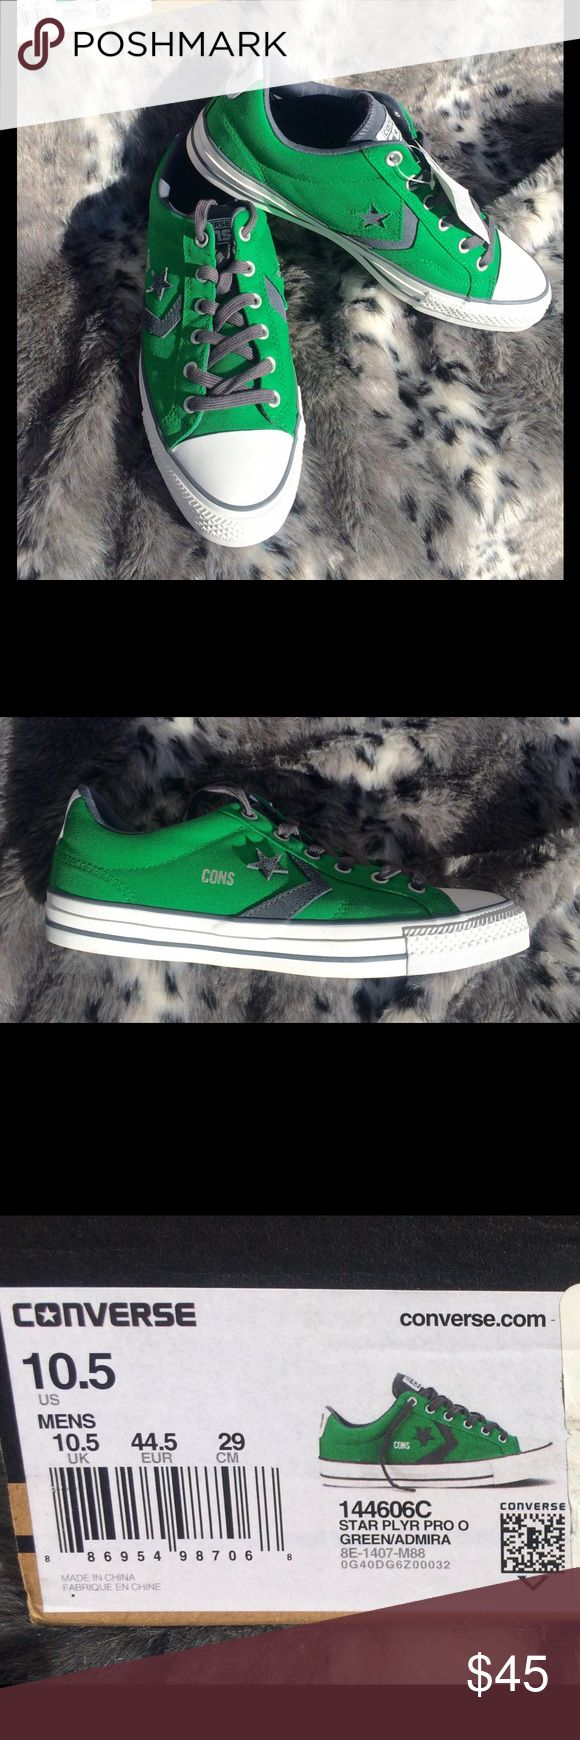 HTF/NWT Converse Star Player Pro Men's 10.5 Nice! Brand new Converse Star Player Pro in green with gray accents. Think holiday gifting for a fraction of retail! Includes box with no top. Converse Shoes Sneakers